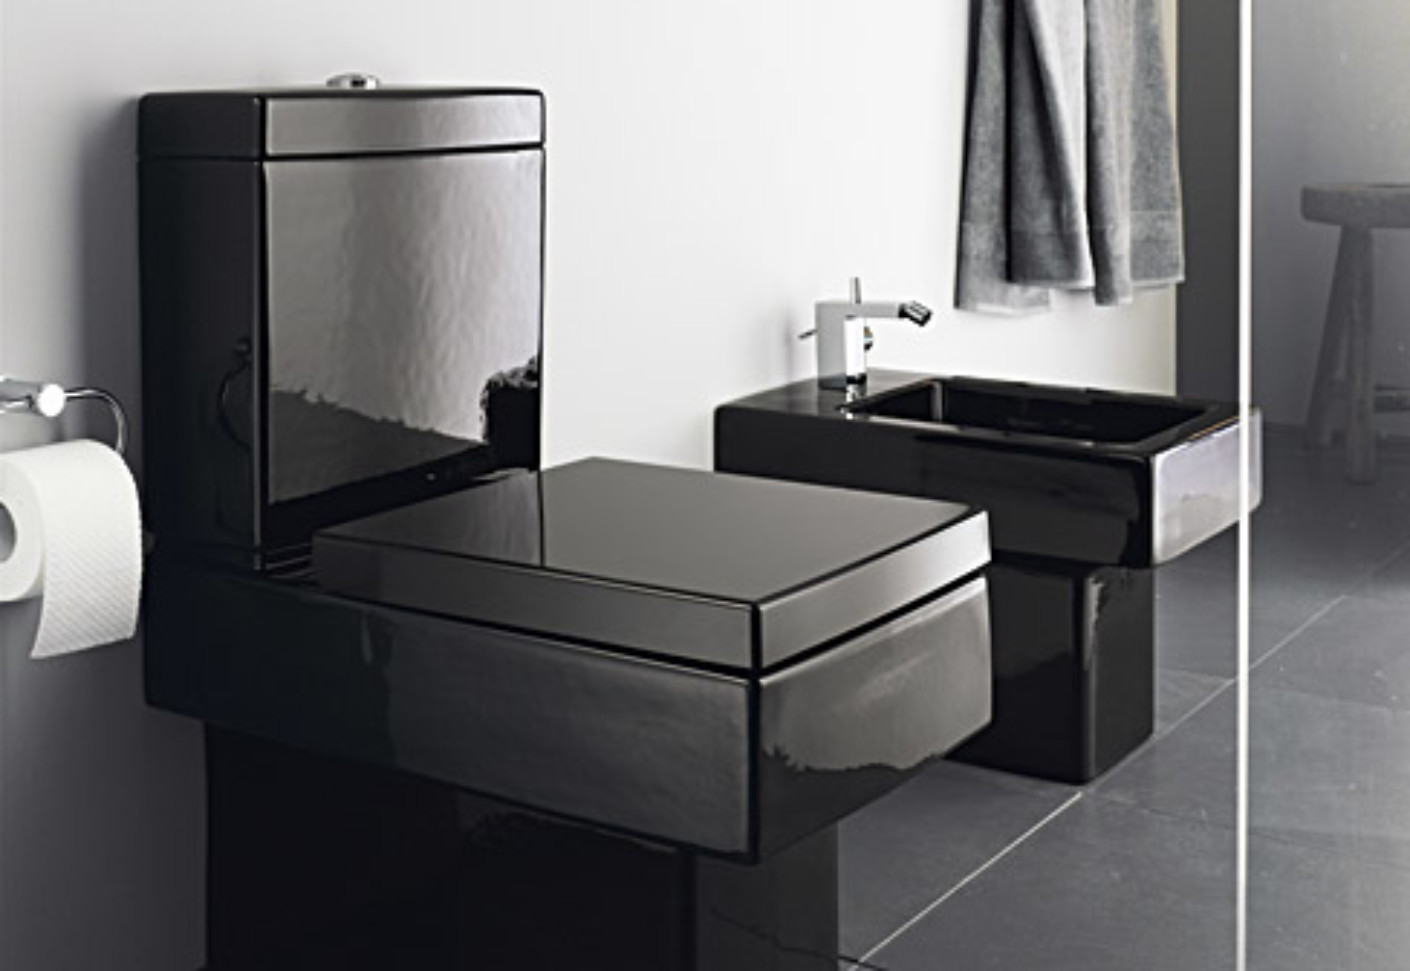 duravit toilet compact wall hung toilet duravit toilet. Black Bedroom Furniture Sets. Home Design Ideas